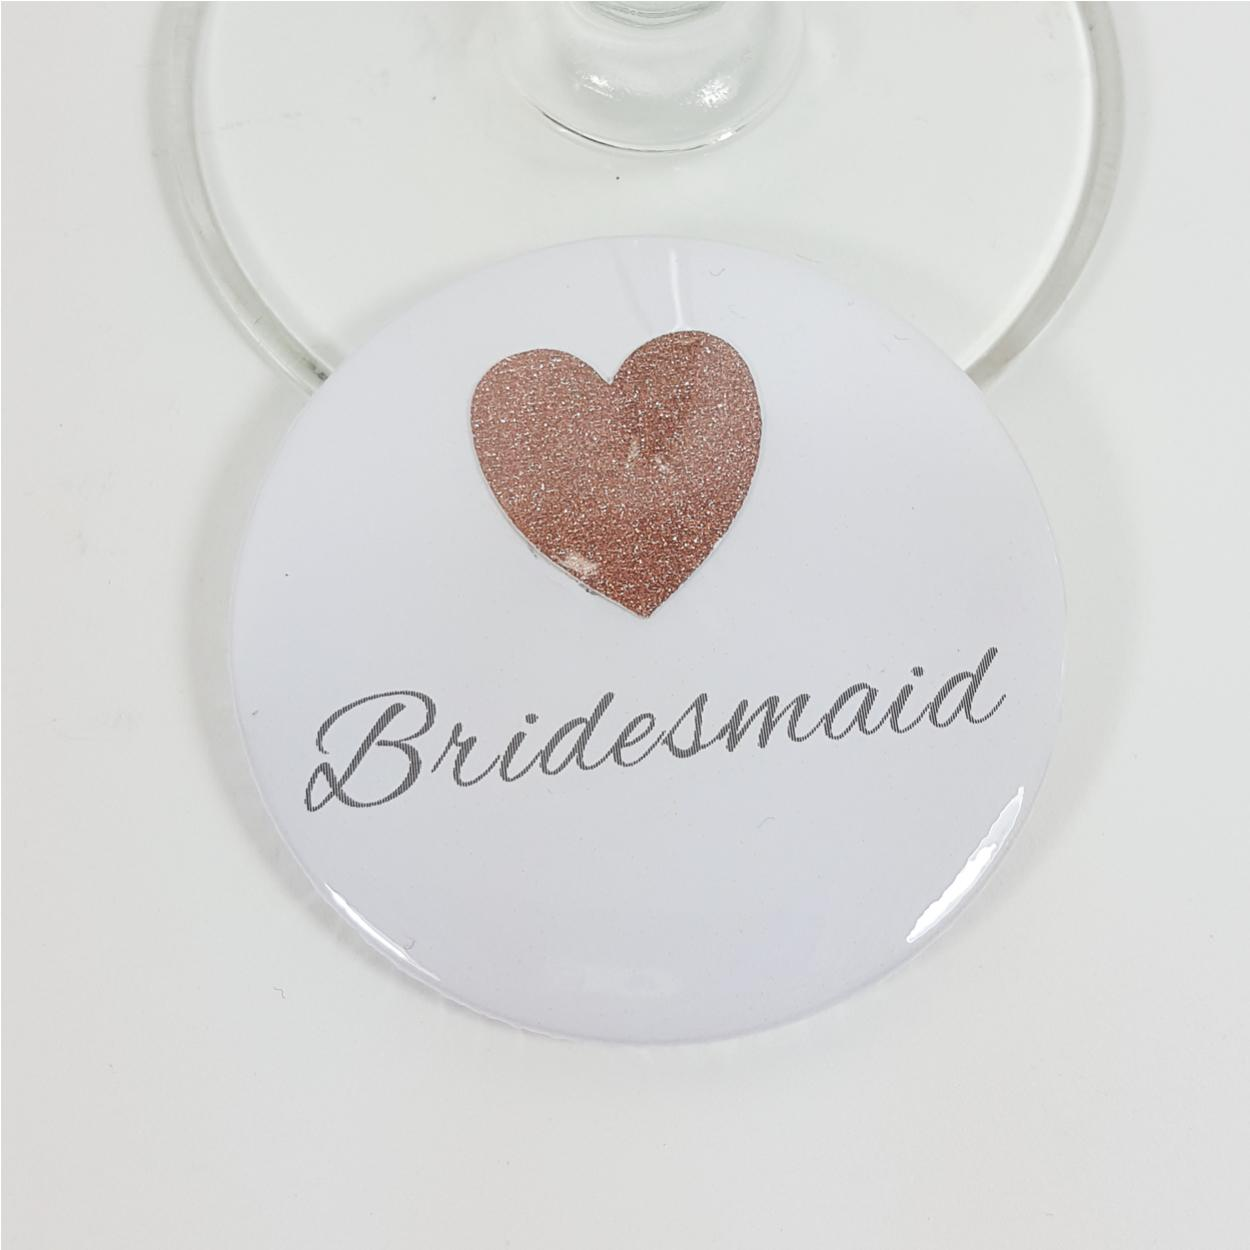 Bridesmaid badge with real sparkly glitter